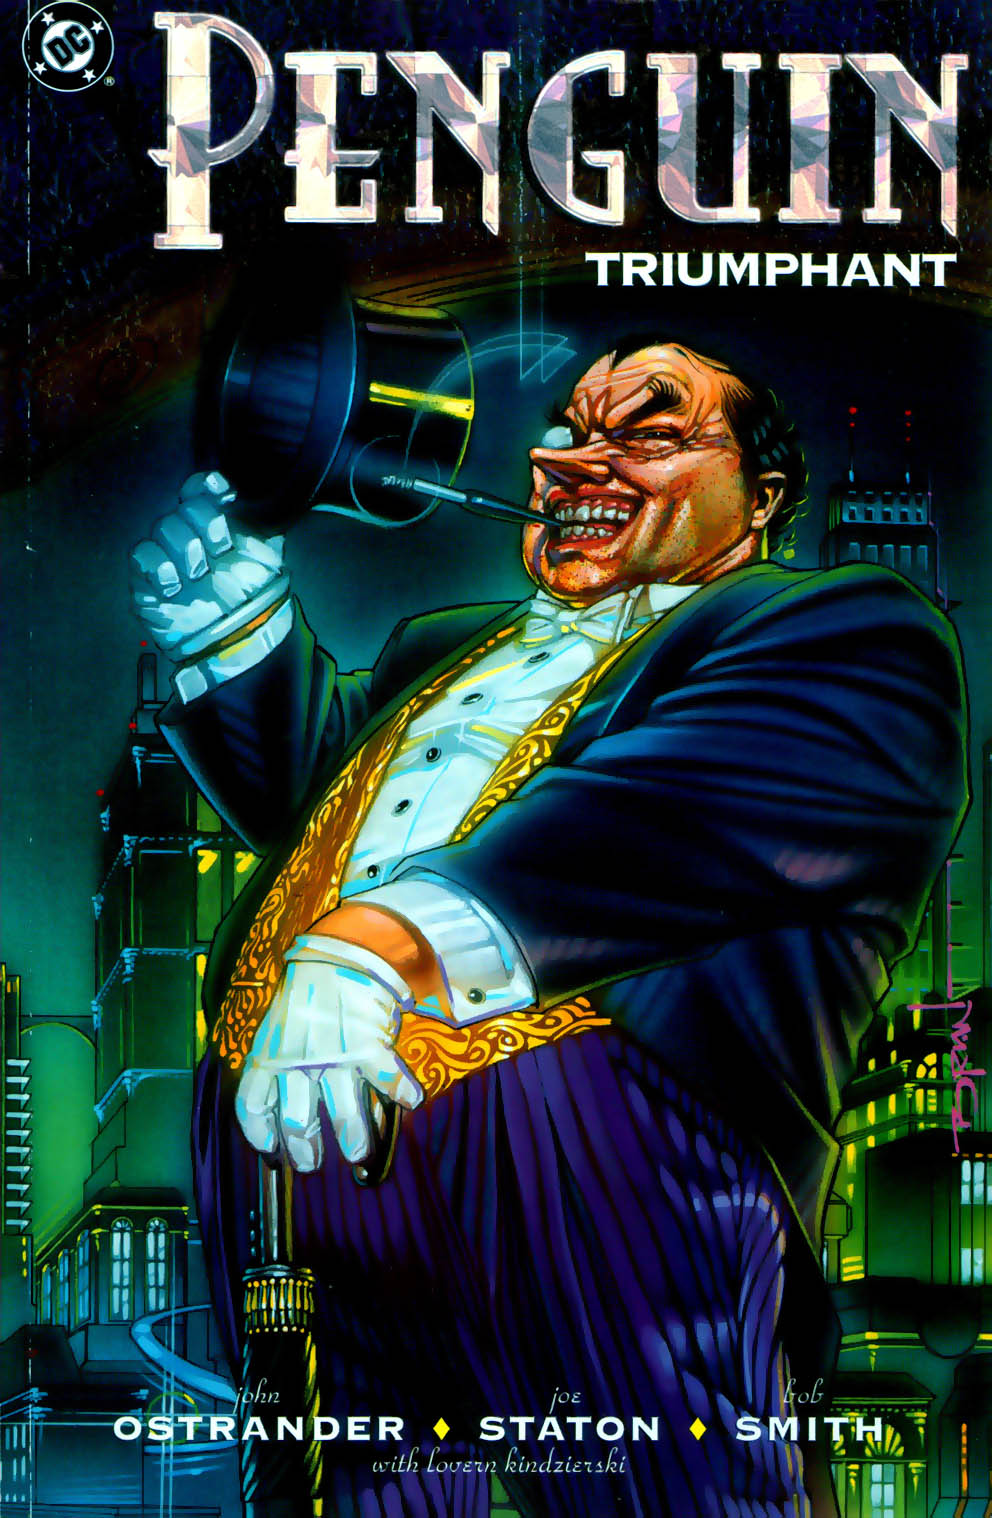 Batman: Penguin Triumphant